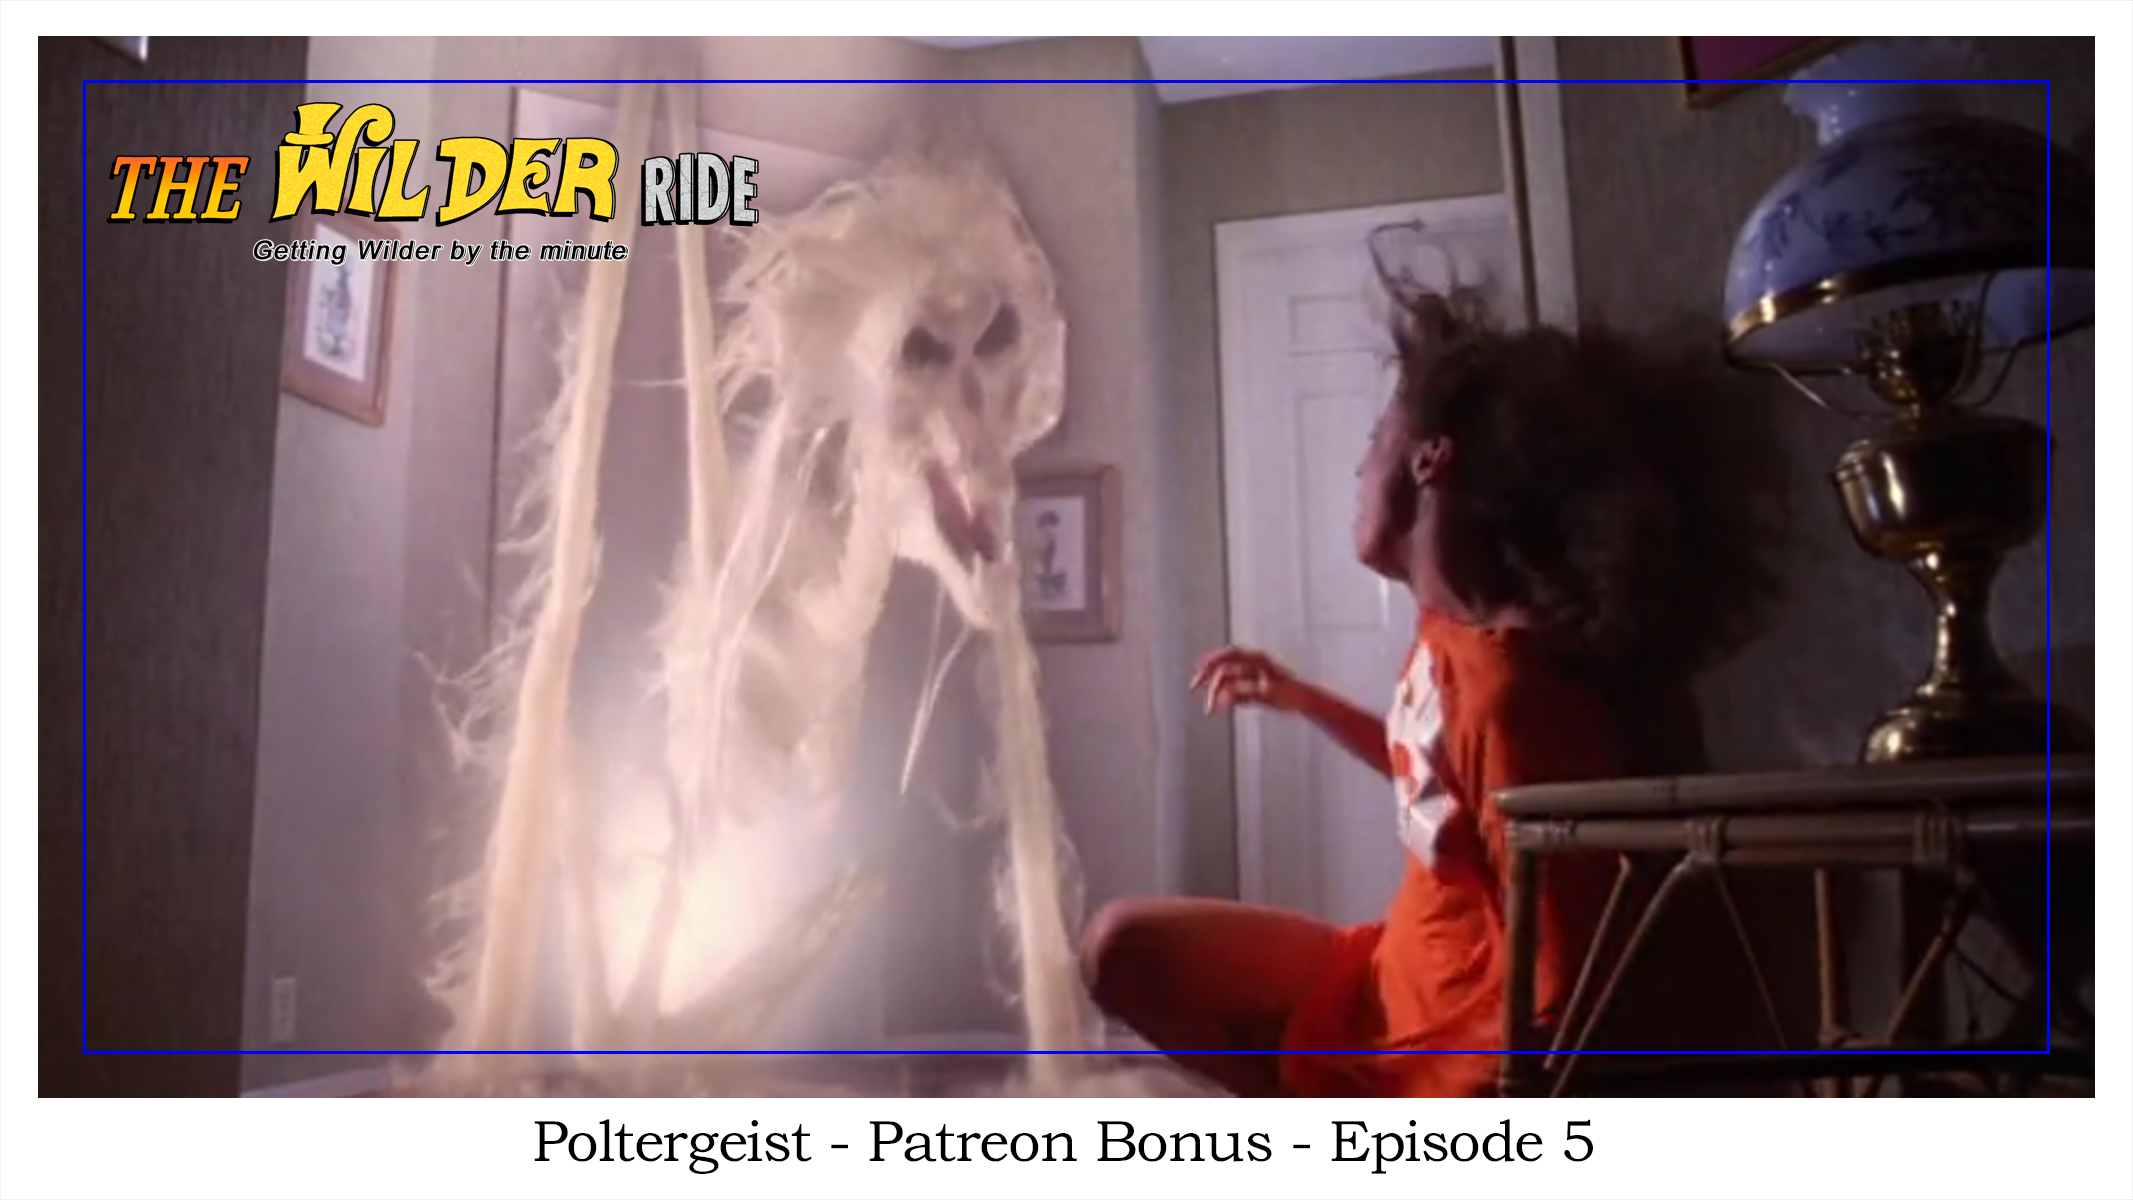 Poltergeist - Who needs Ghostbusters when you can have the A Team?